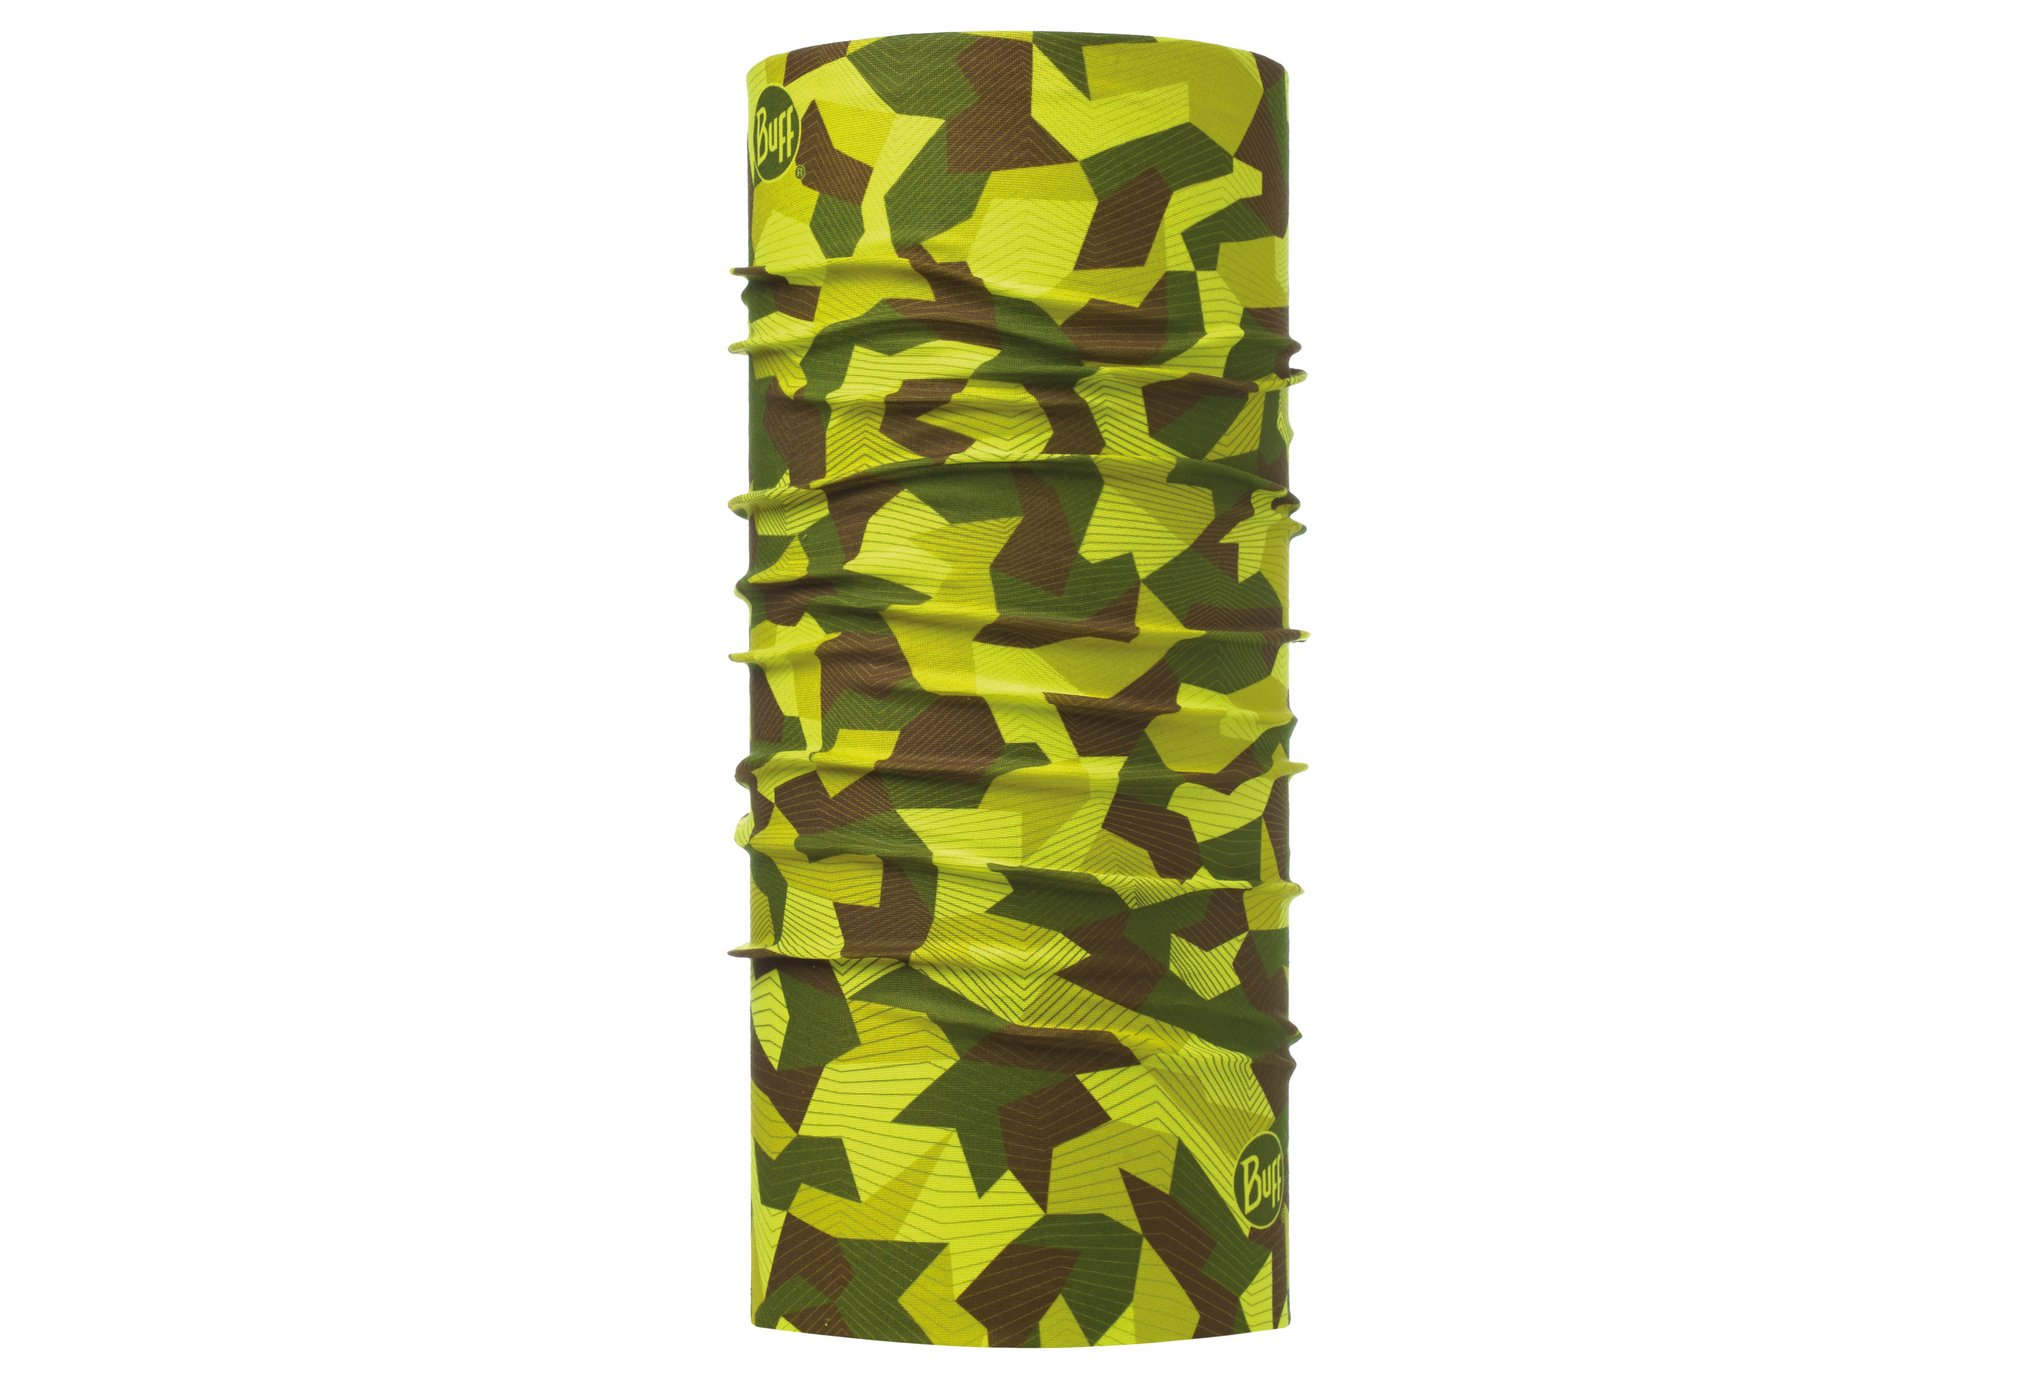 Buff Original block camo green tours de cou